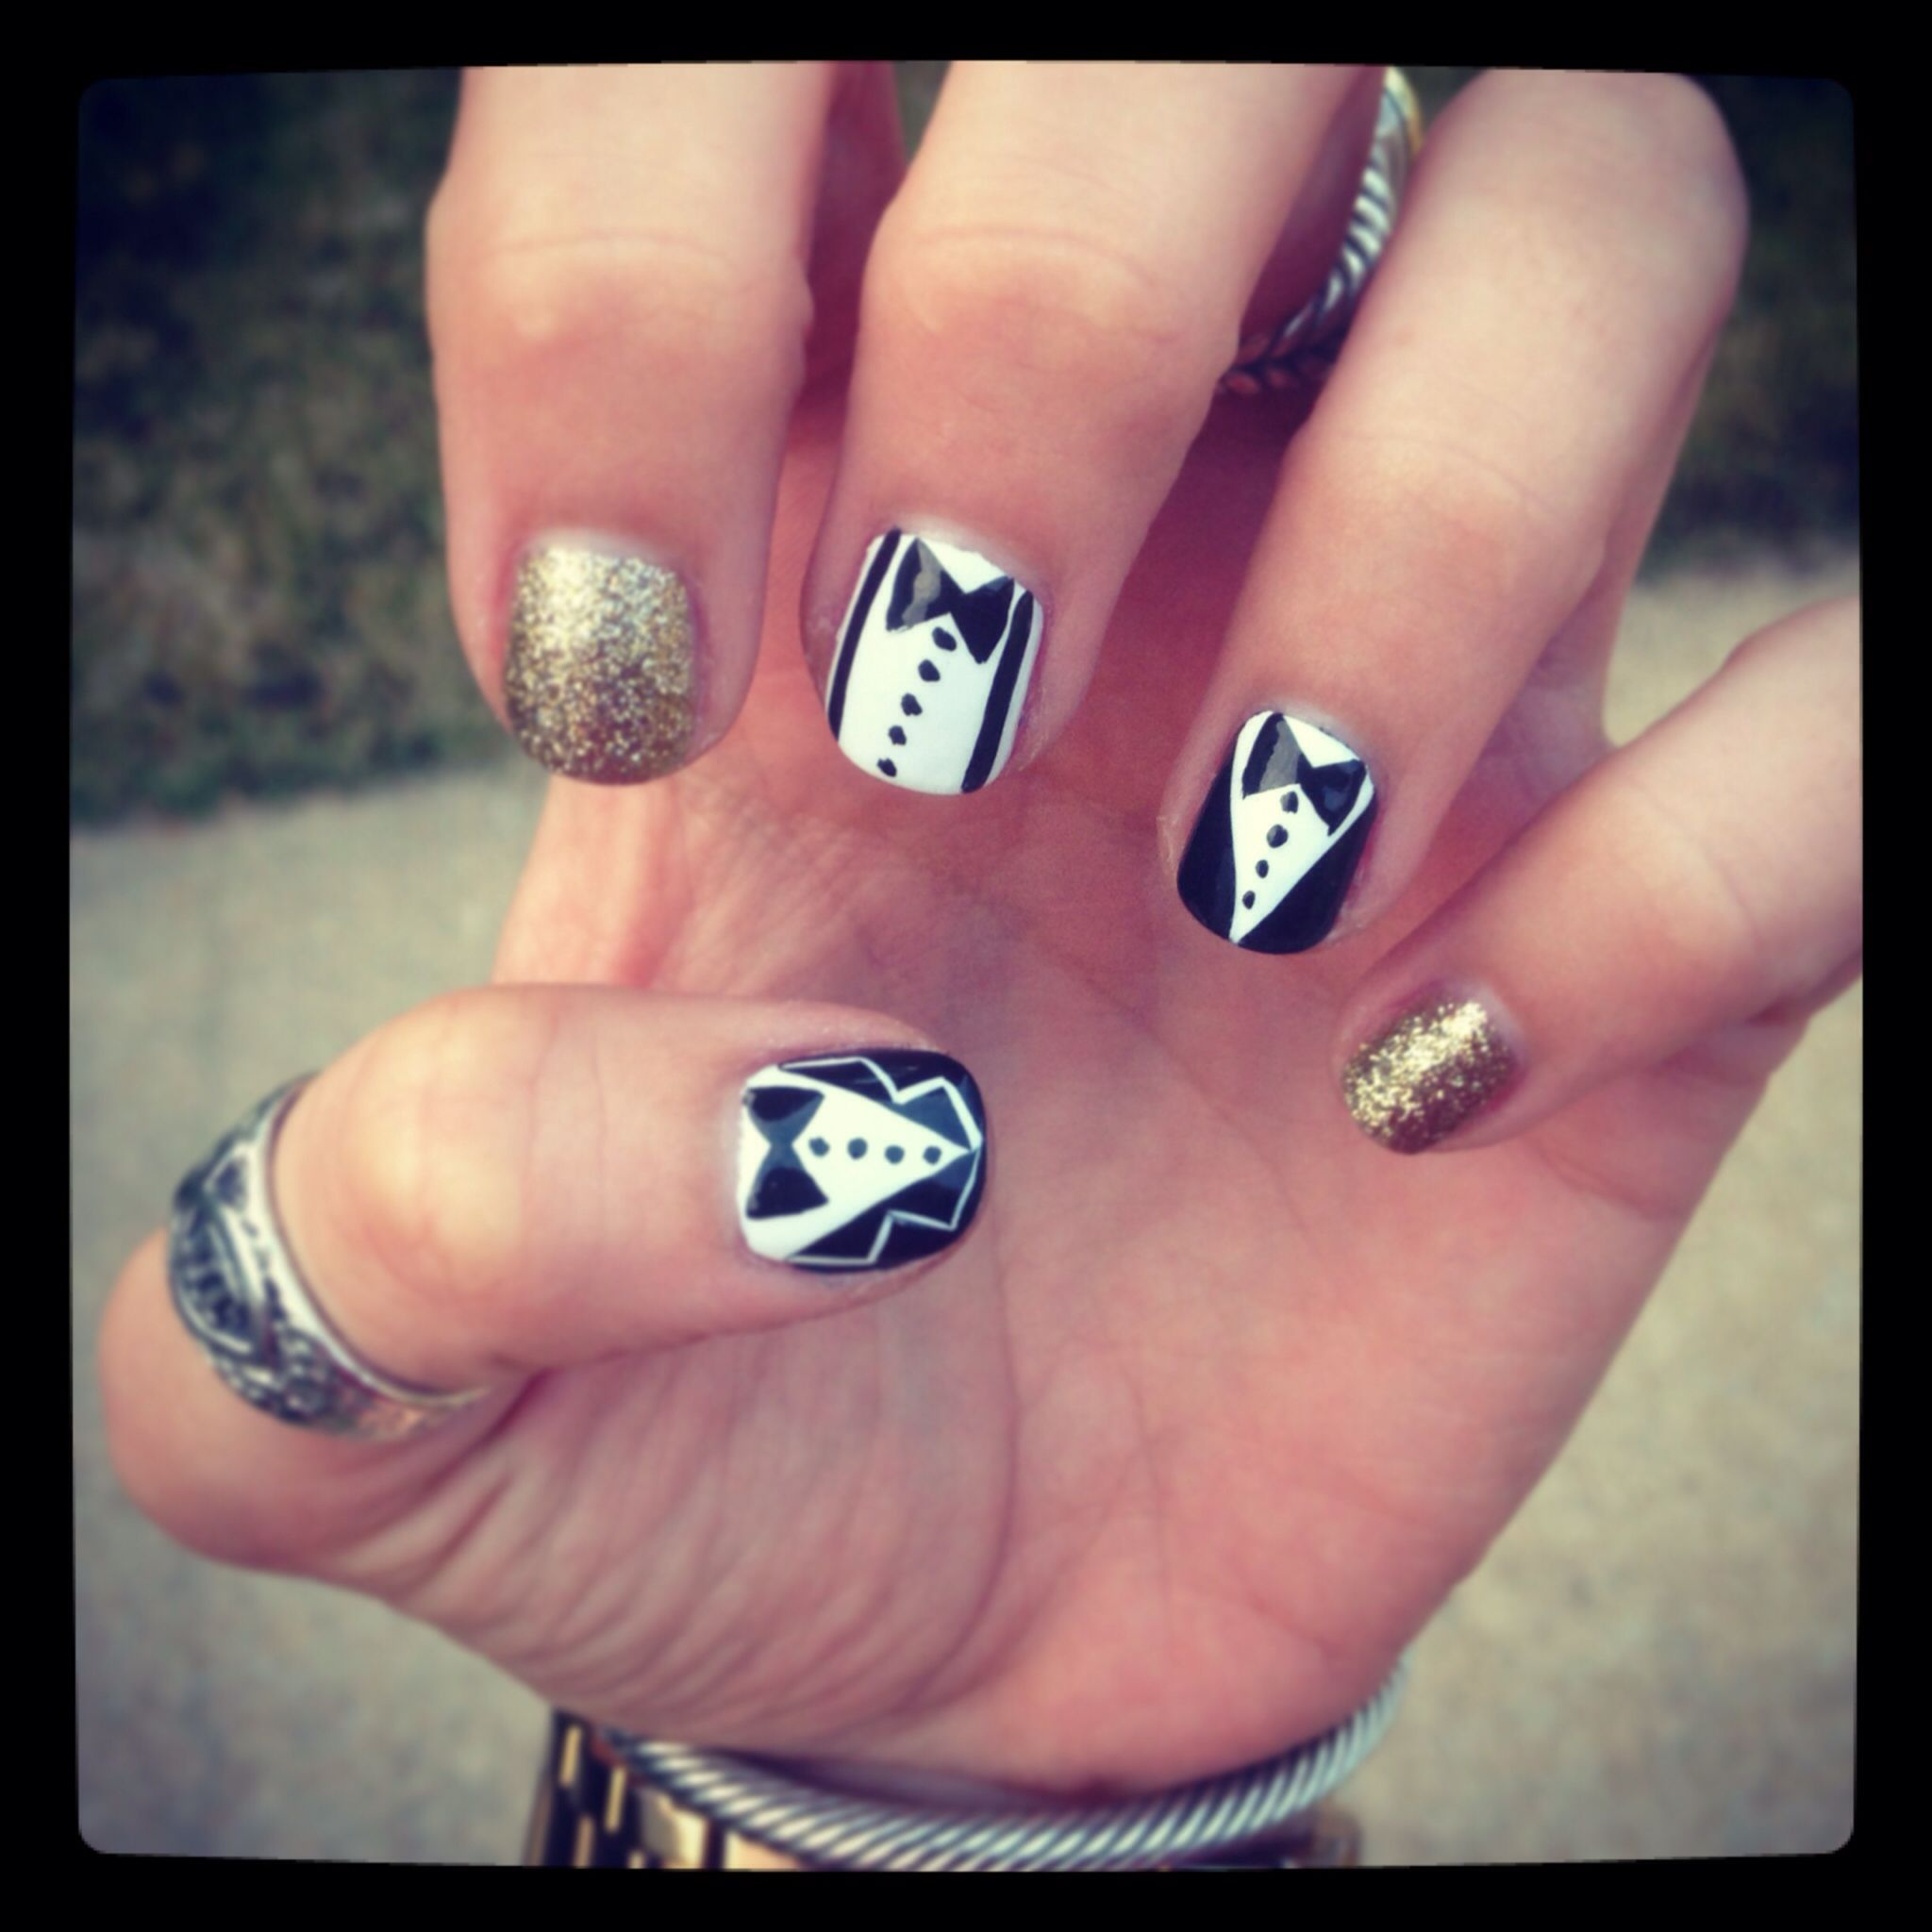 Justin Timberlake nails. Suit and tie | craftayy ...